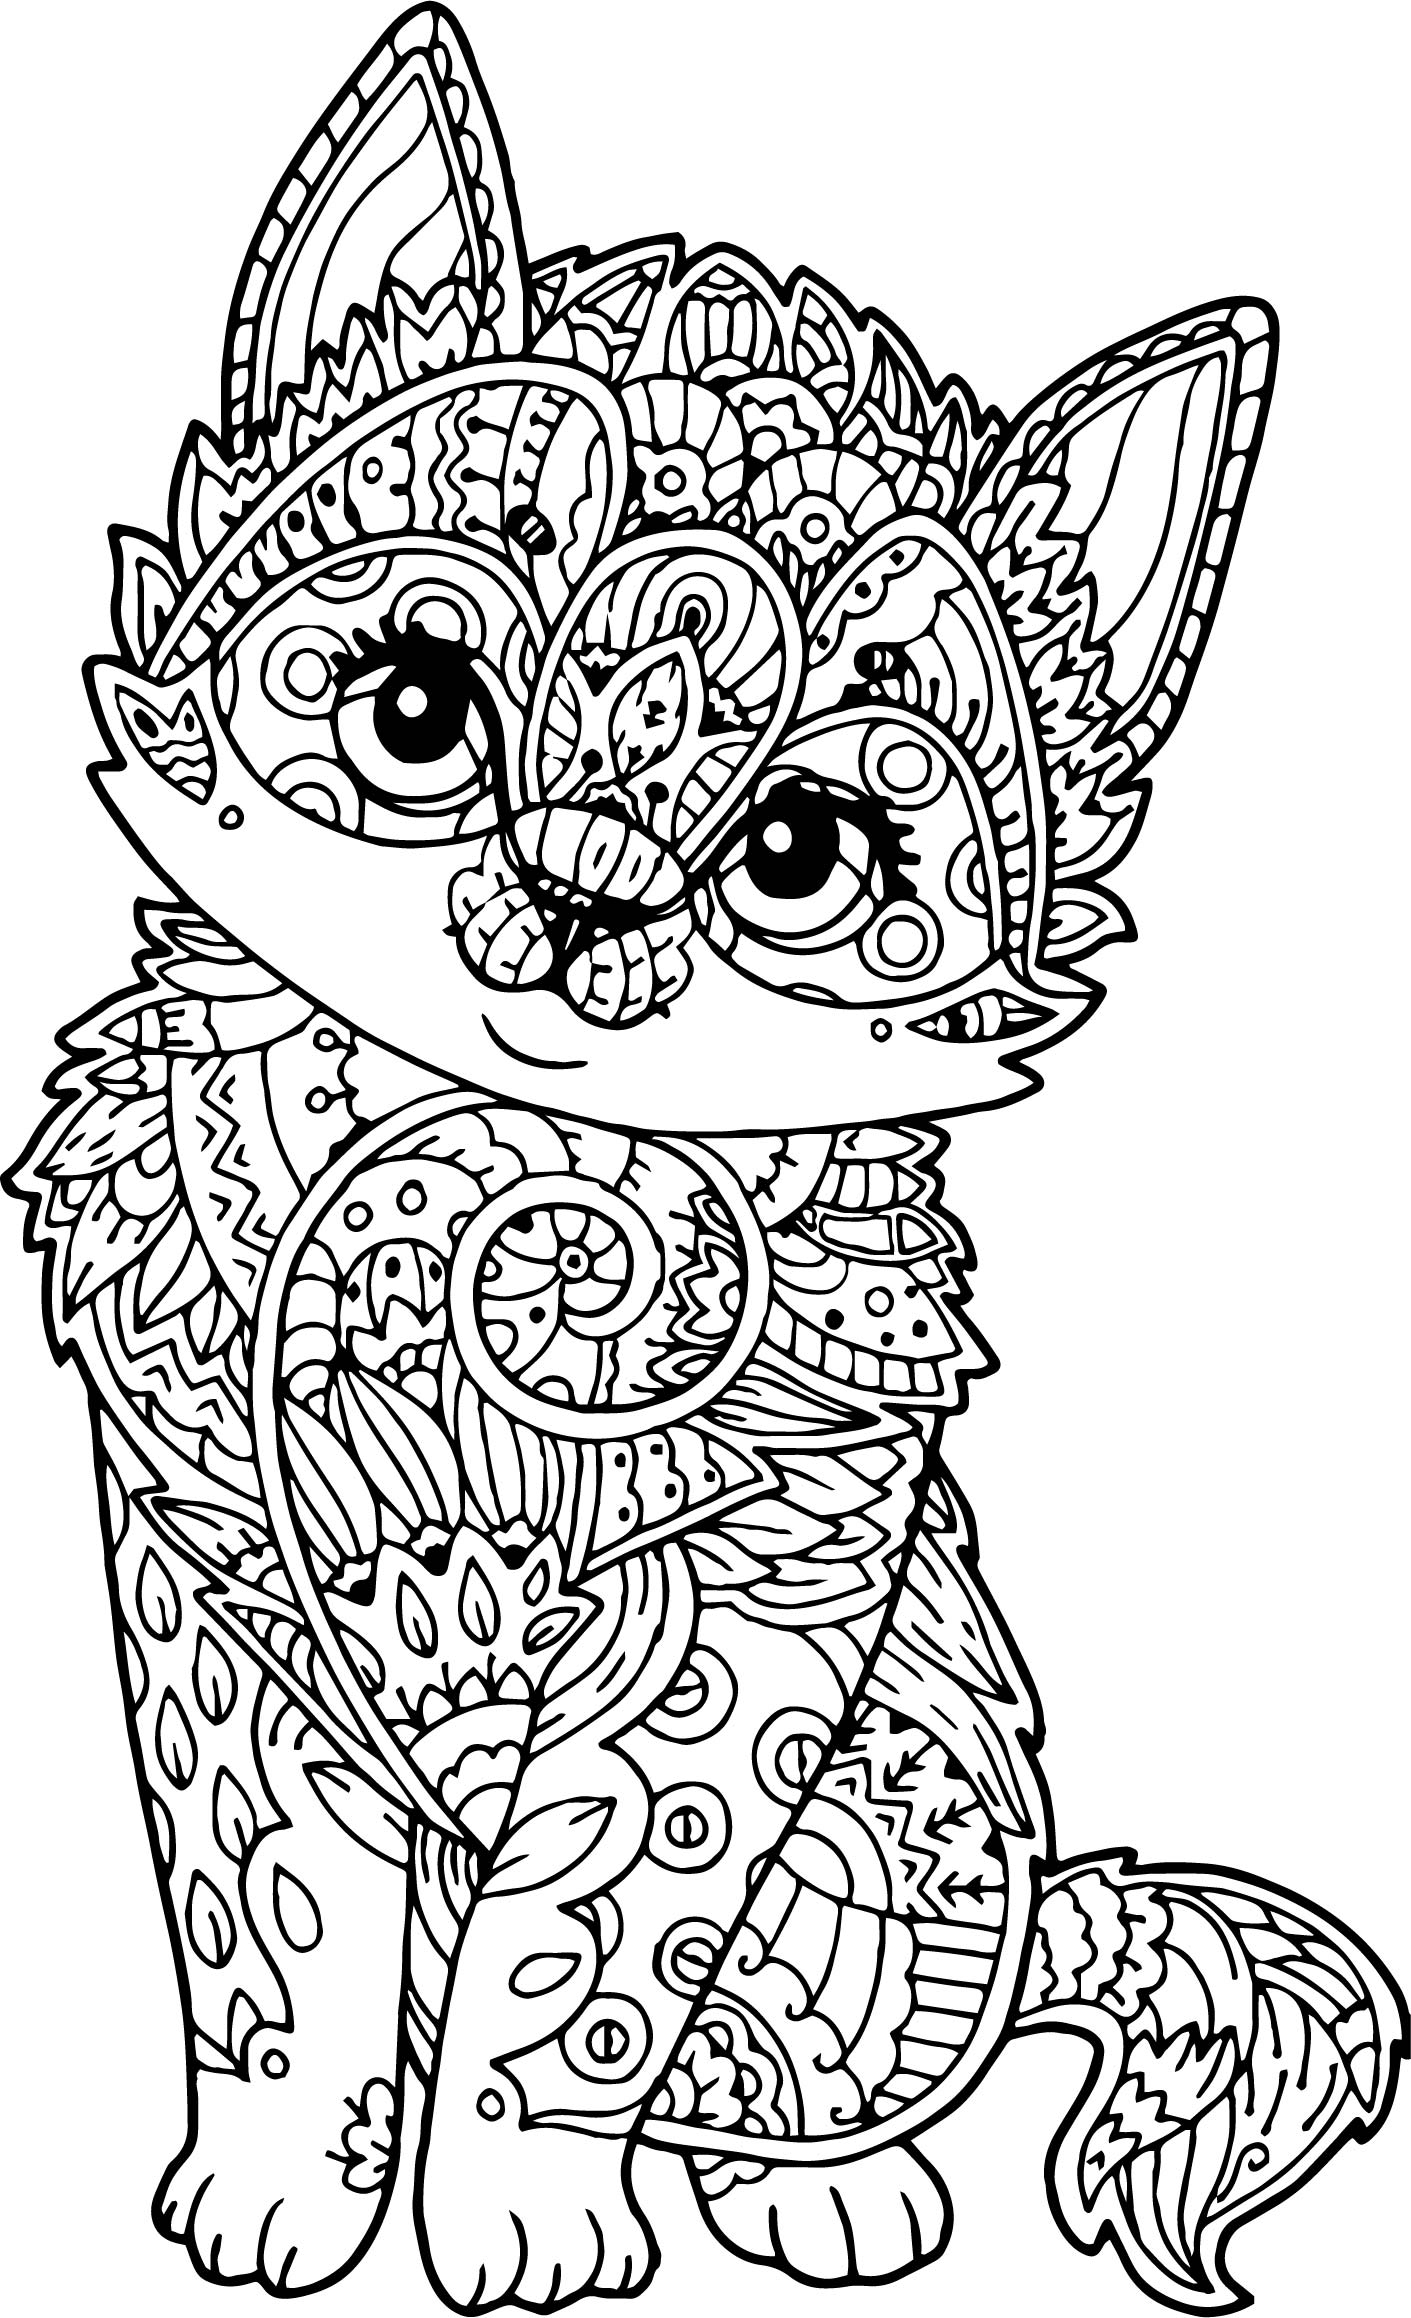 Puppy Pages For Adults Coloring Pages